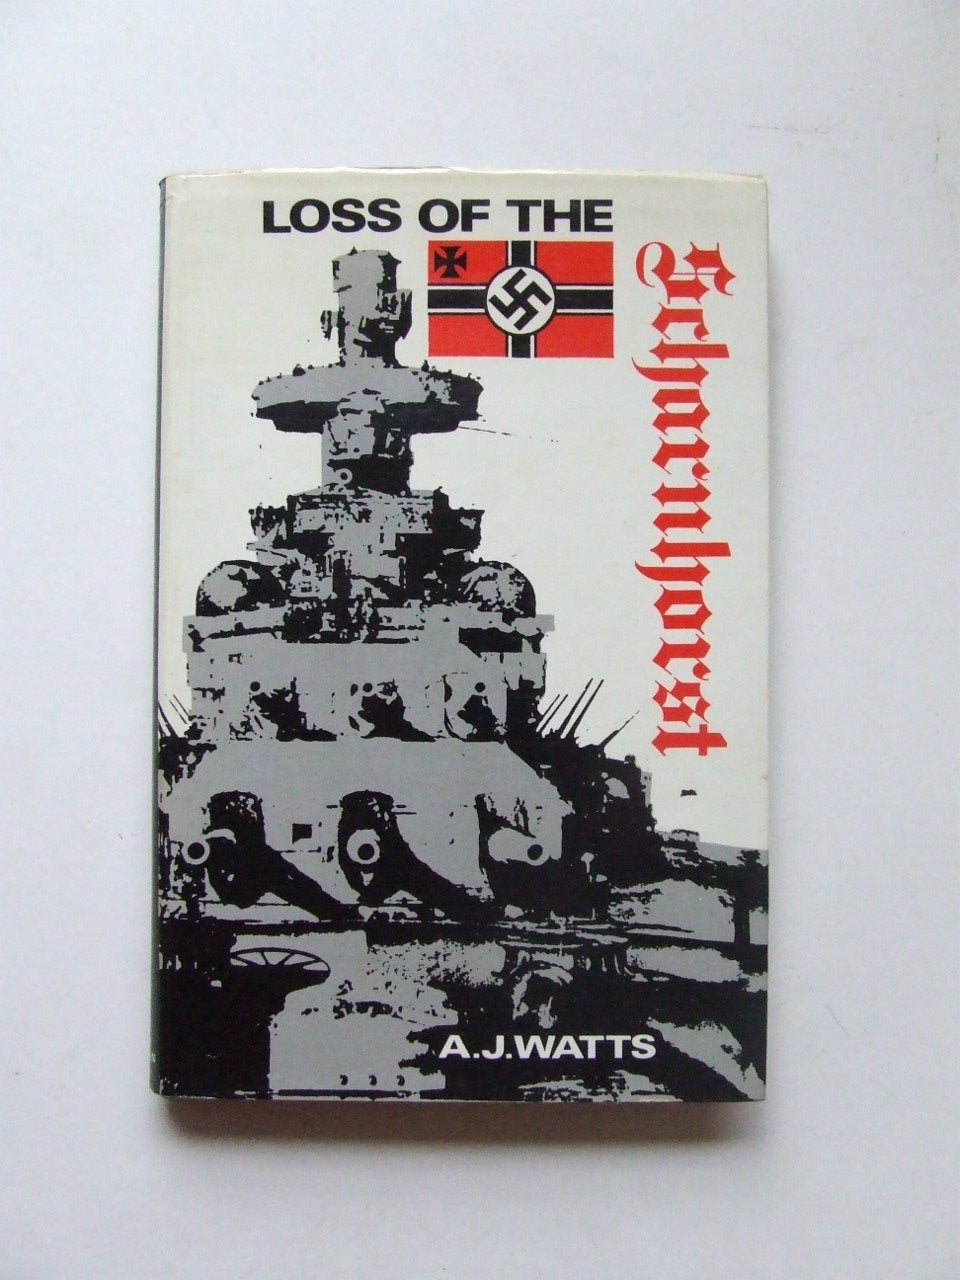 The Loss of the Scharnhorst